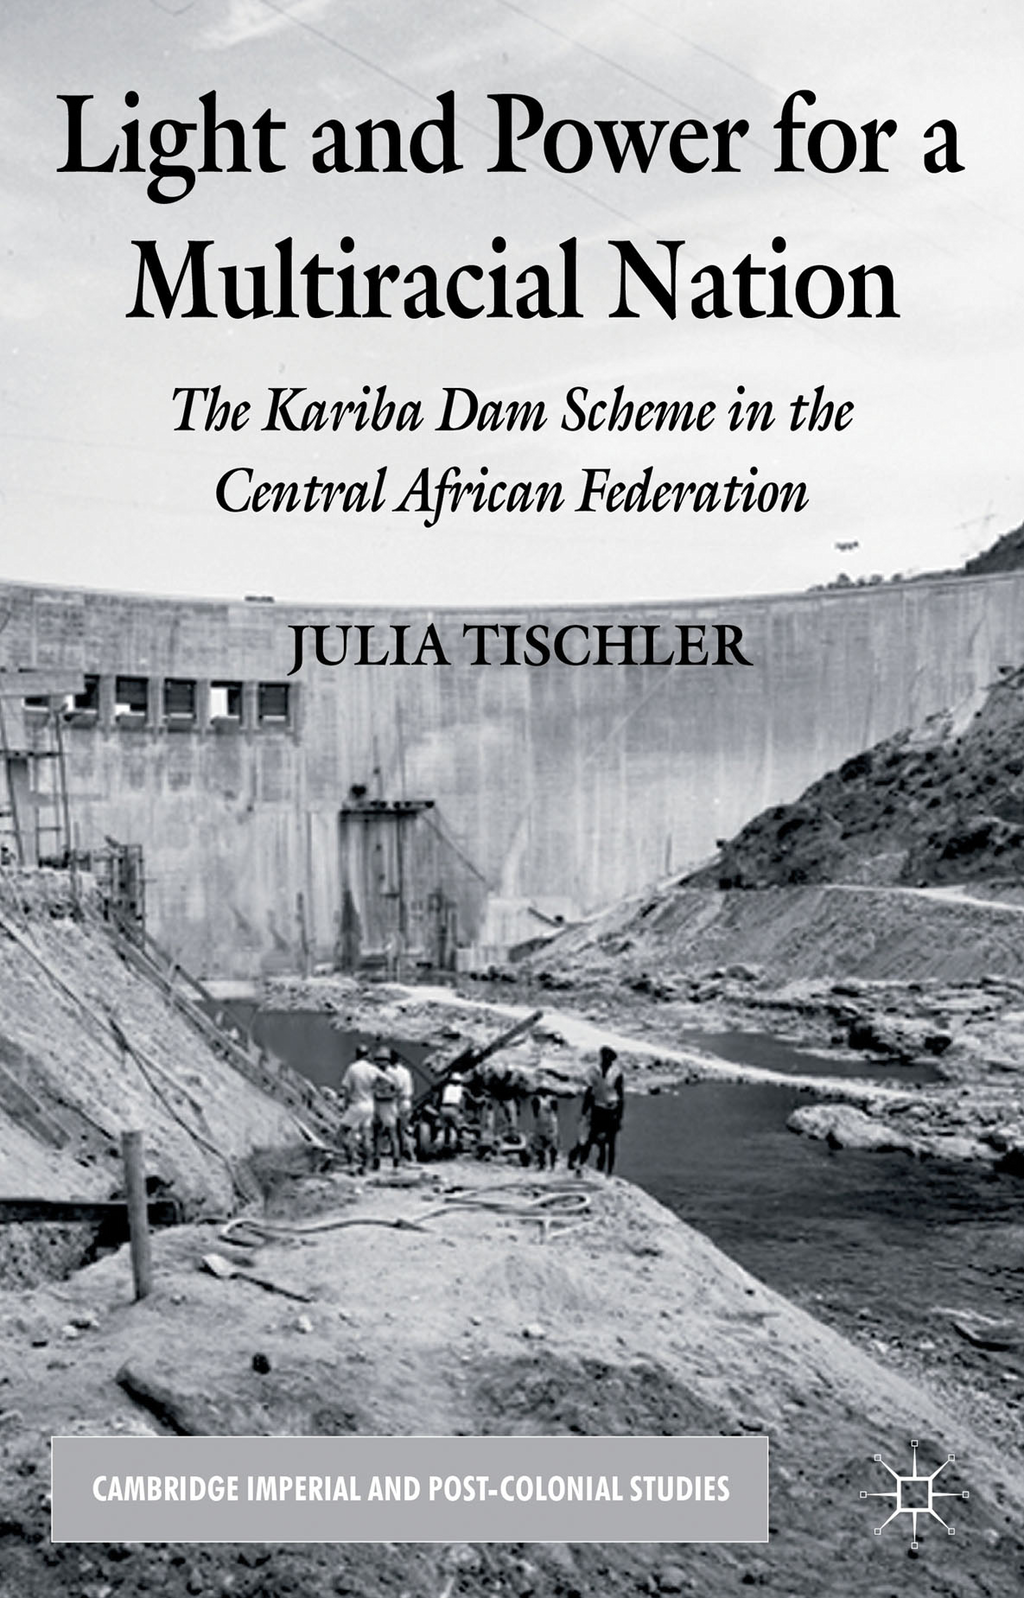 Light and Power for a Multiracial Nation The Kariba Dam Scheme in the Central African Federation